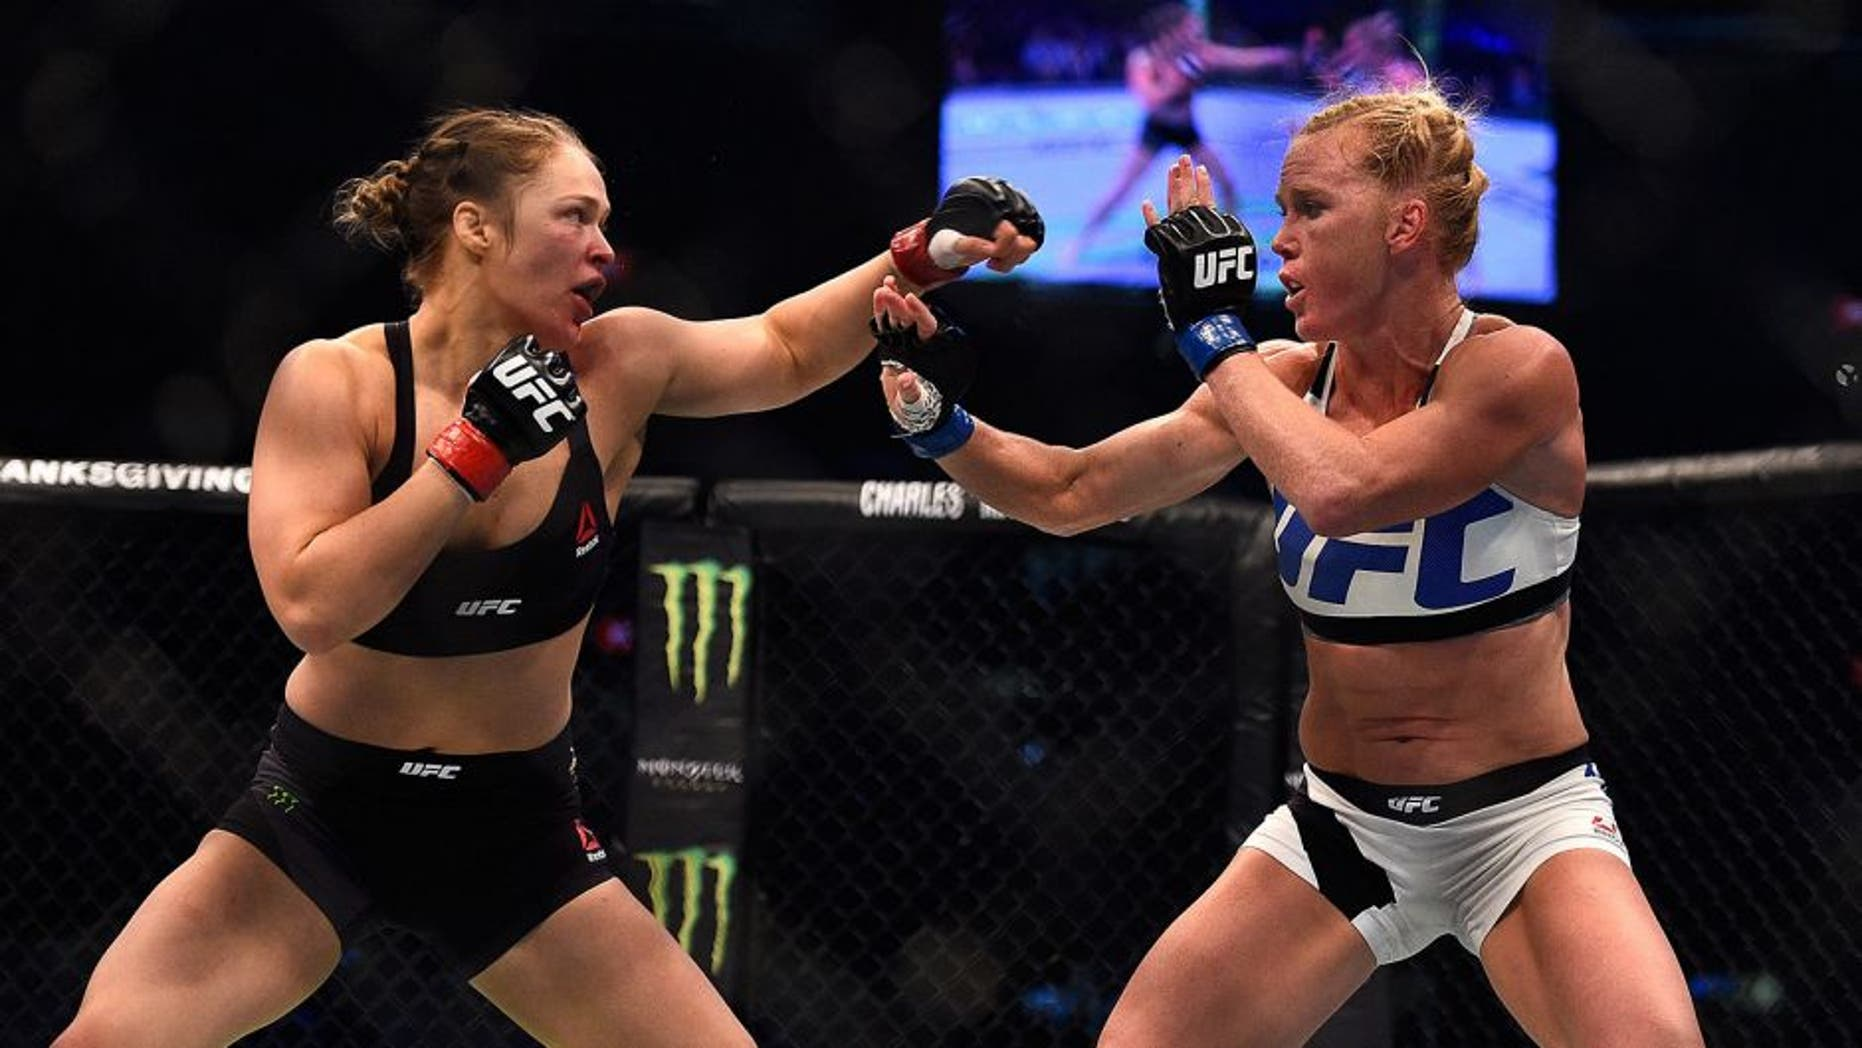 MELBOURNE, AUSTRALIA - NOVEMBER 15: (L-R) Ronda Rousey faces Holly Holm in their UFC women's bantamweight championship bout during the UFC 193 event at Etihad Stadium on November 15, 2015 in Melbourne, Australia. (Photo by Jeff Bottari/Zuffa LLC/Zuffa LLC via Getty Images)